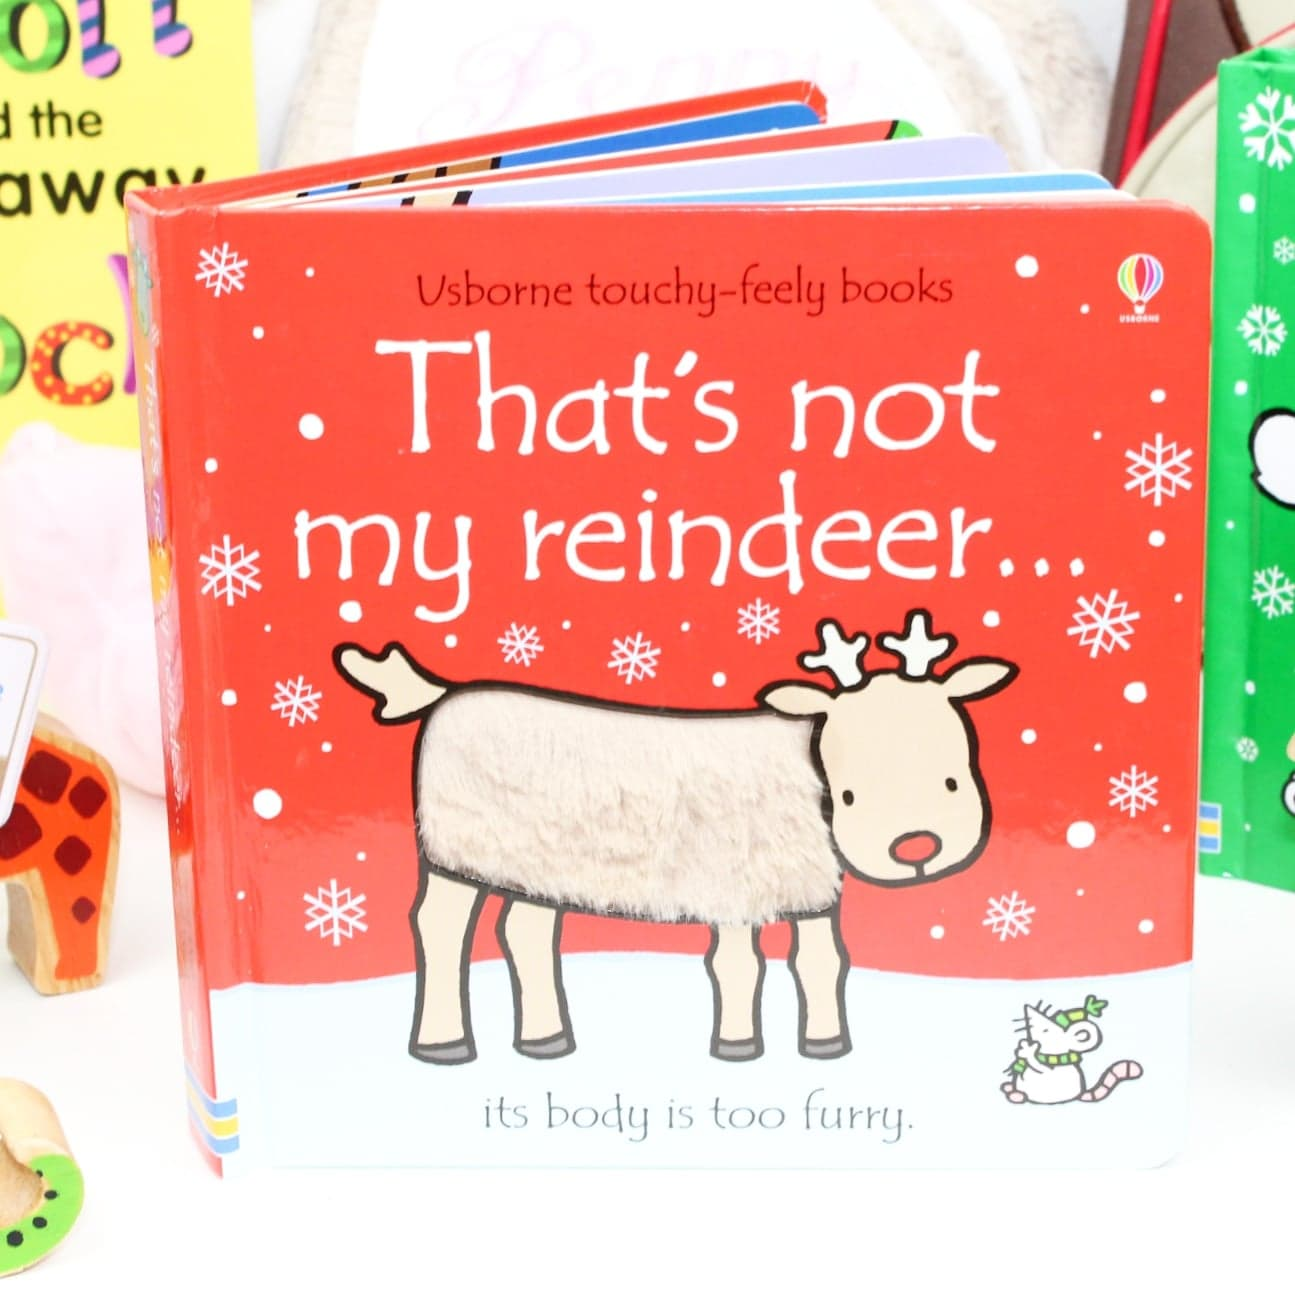 Toddler's Christmas Gift Guide With 'That's Not My...' Books